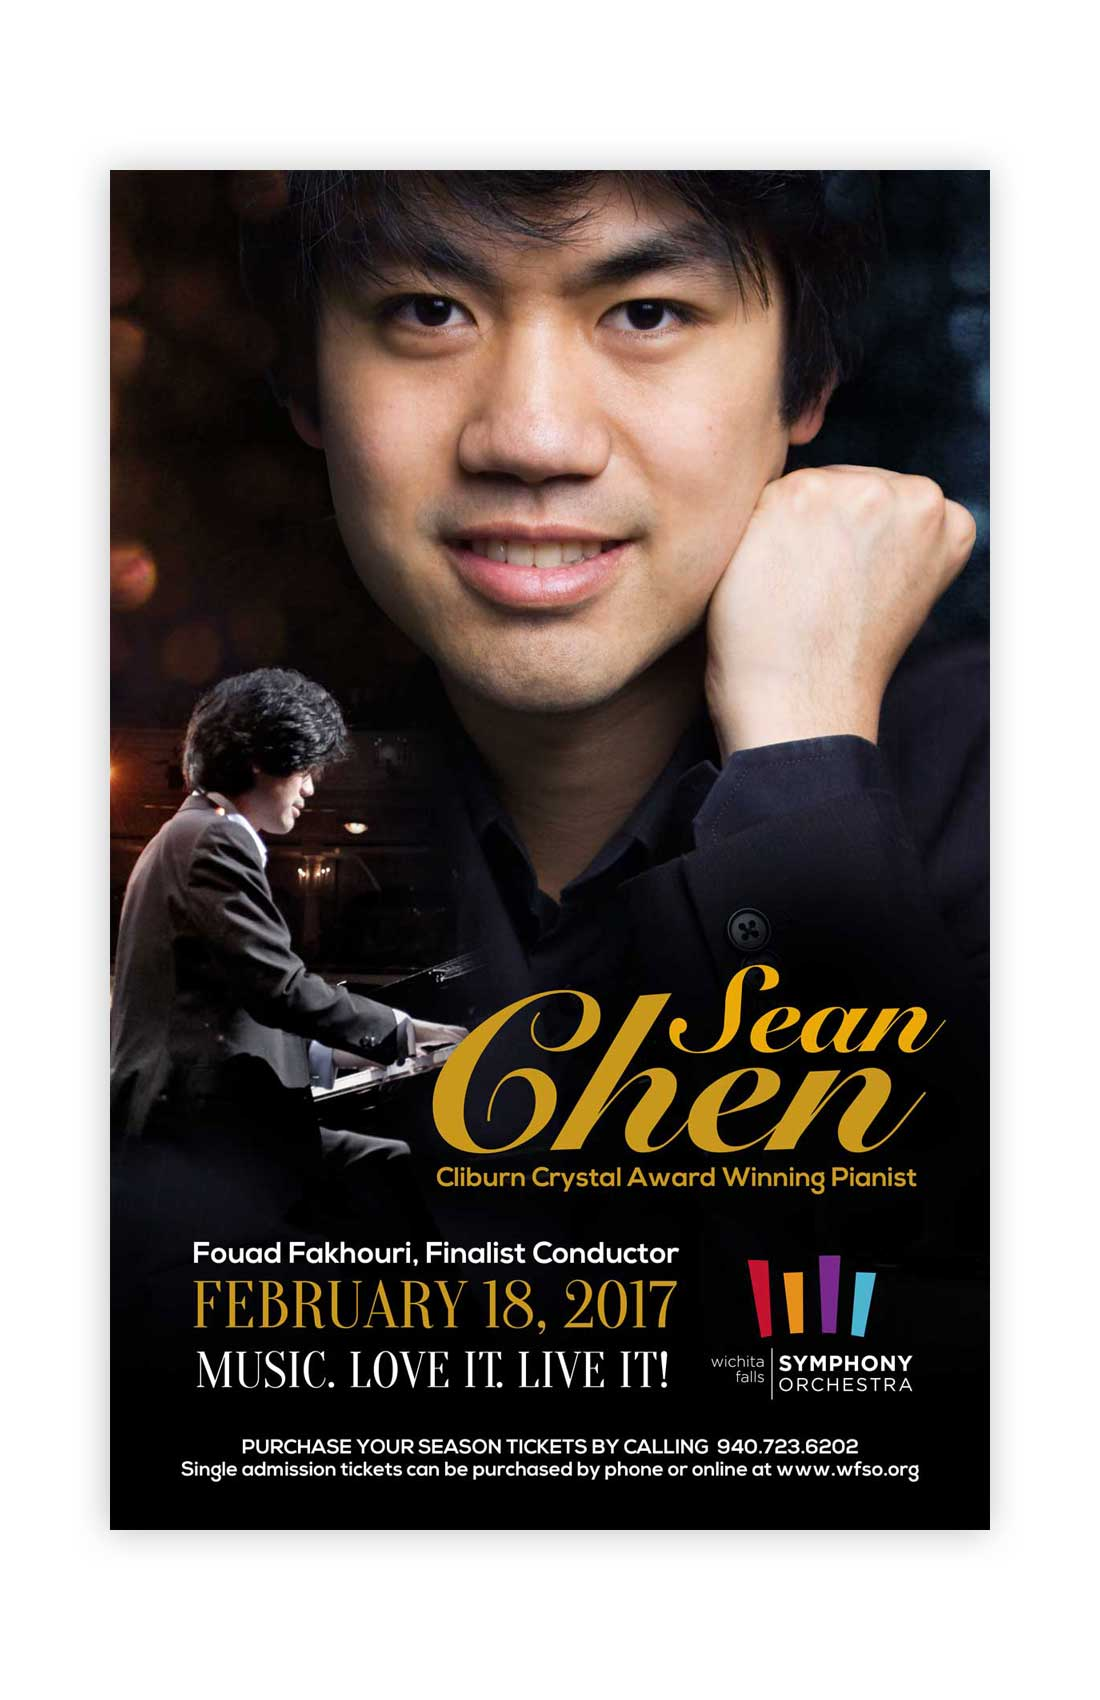 Sean Chen Music Concert Poster Design